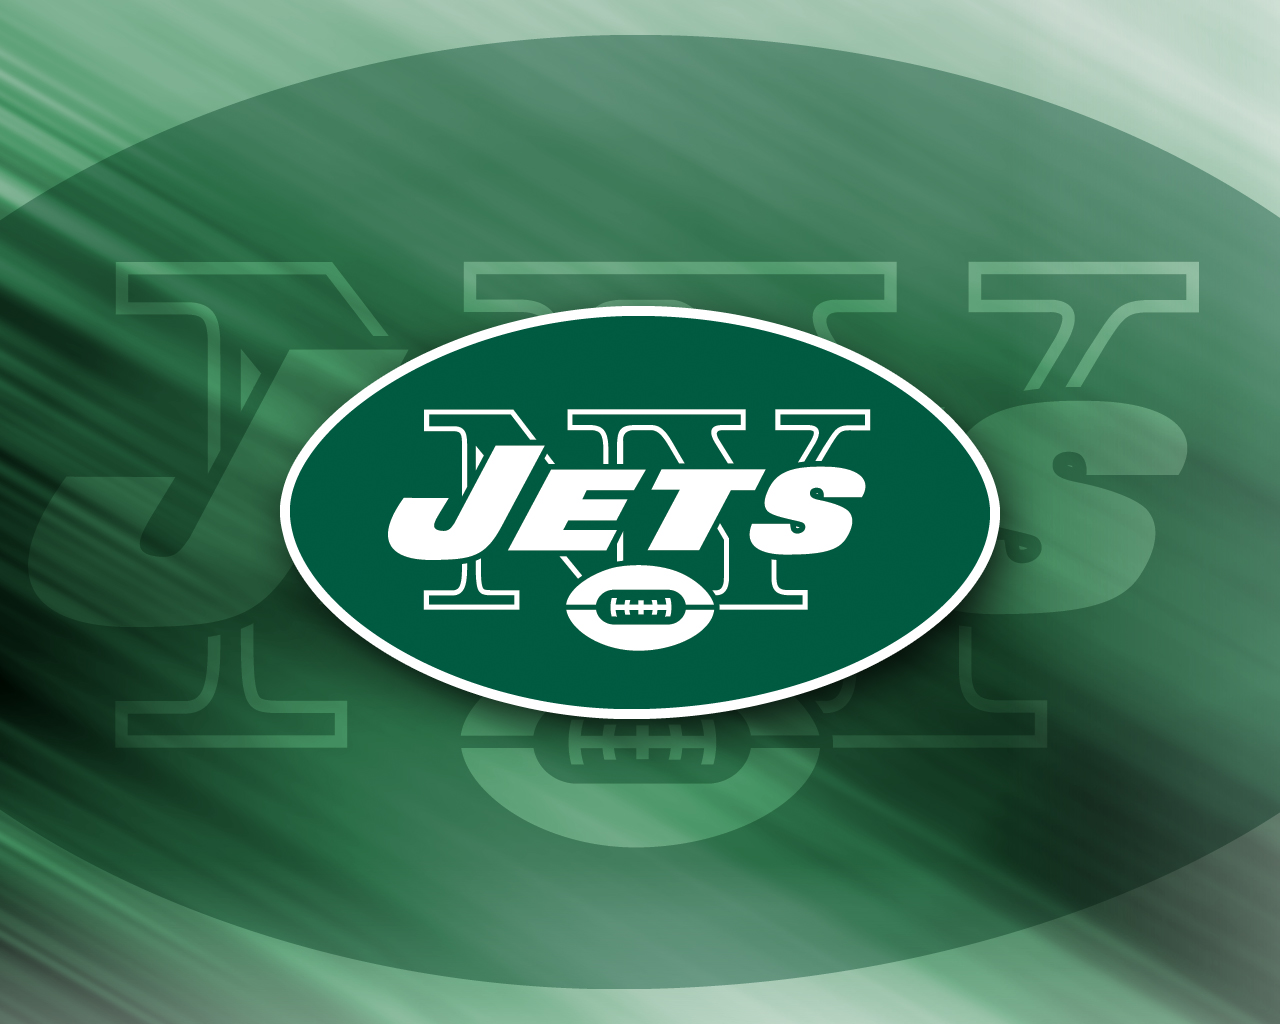 Charitybuzz 4 NY Jets Pre Season Game Tickets Plus Behind The